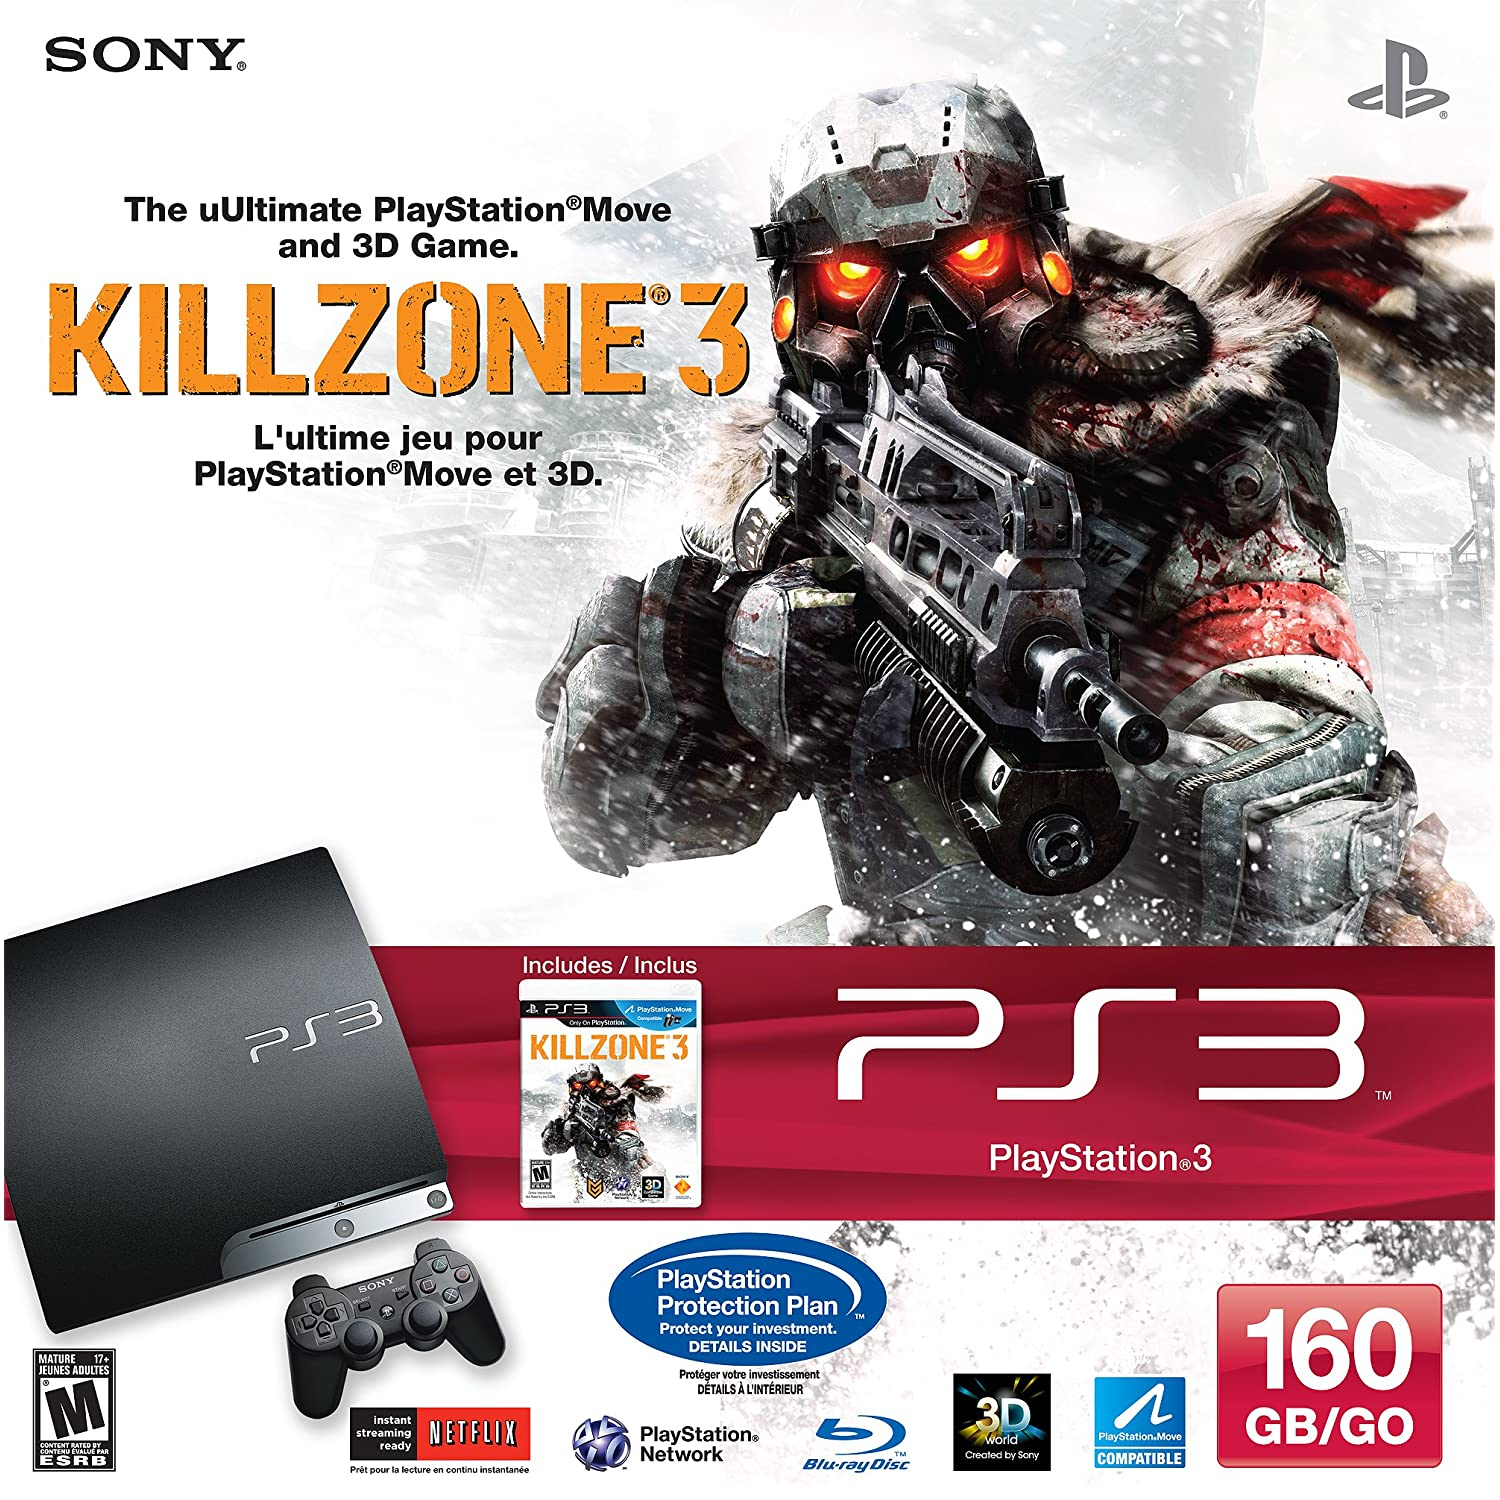 PLAYSTATION 3 160 GB Killzone 3 Bundle